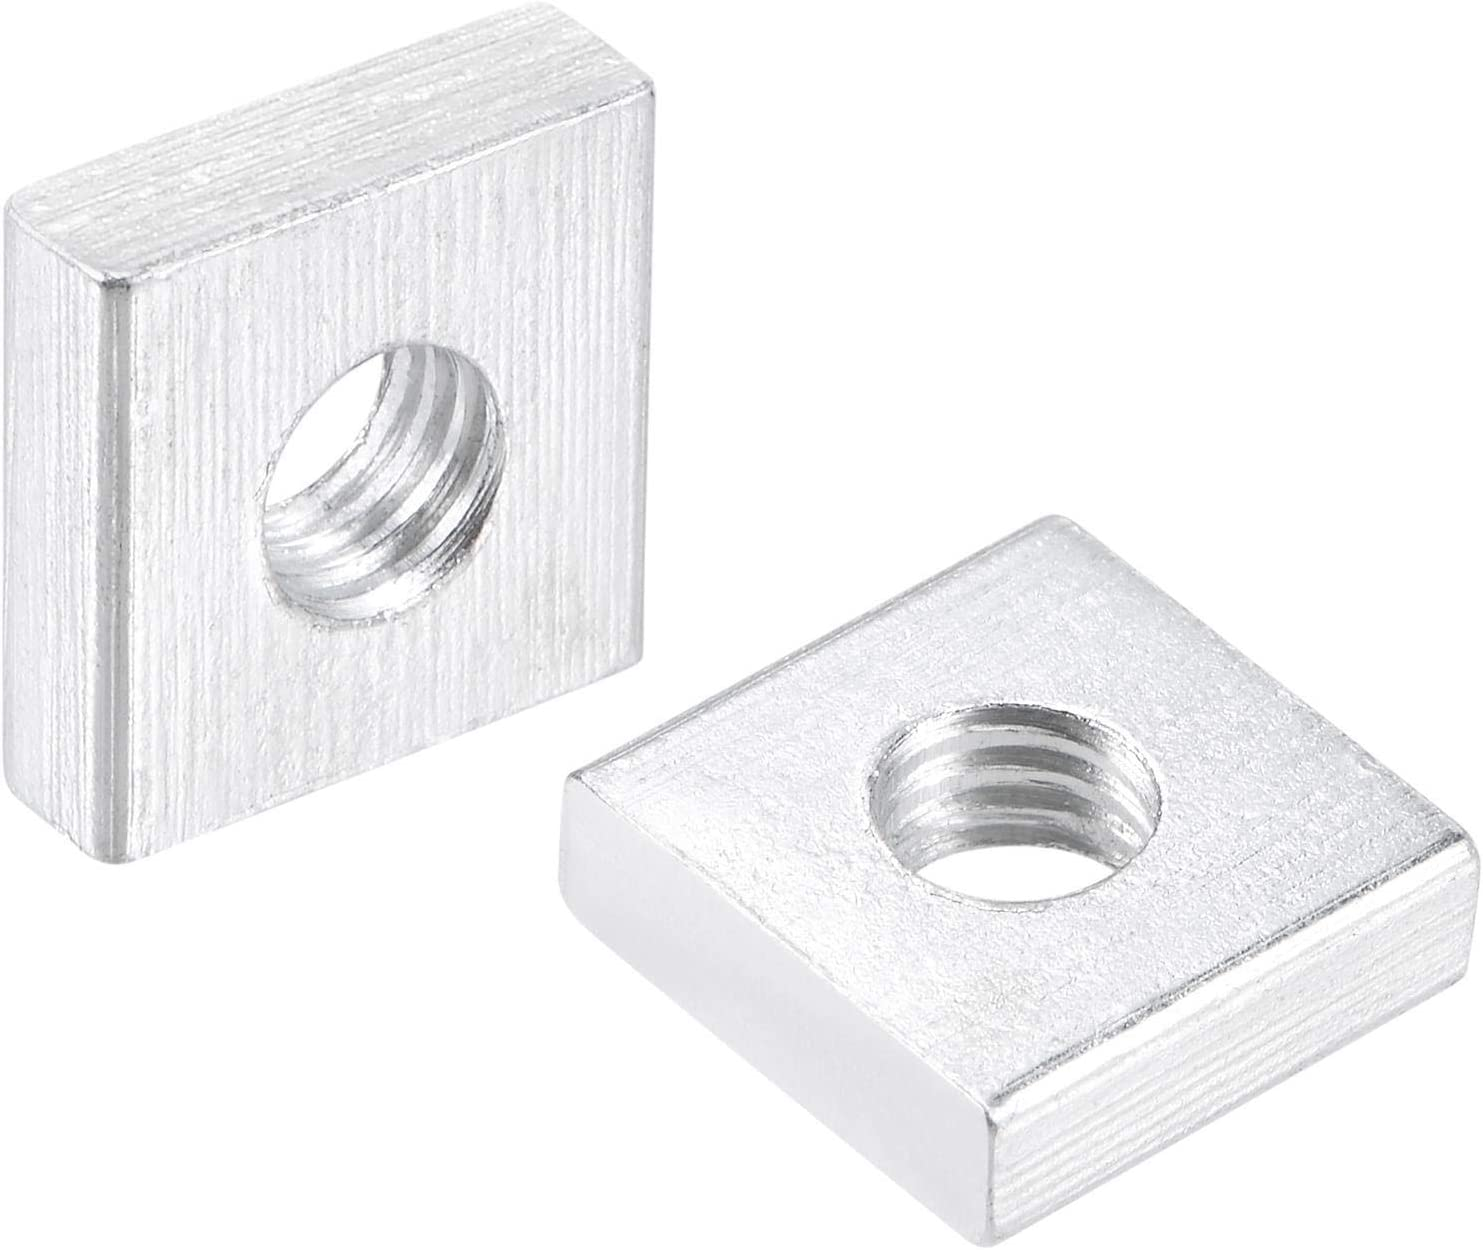 uxcell Square Surprise price shipfree Nuts M6x13mmx4mm Zinc-Plated Thread Metric Coarse